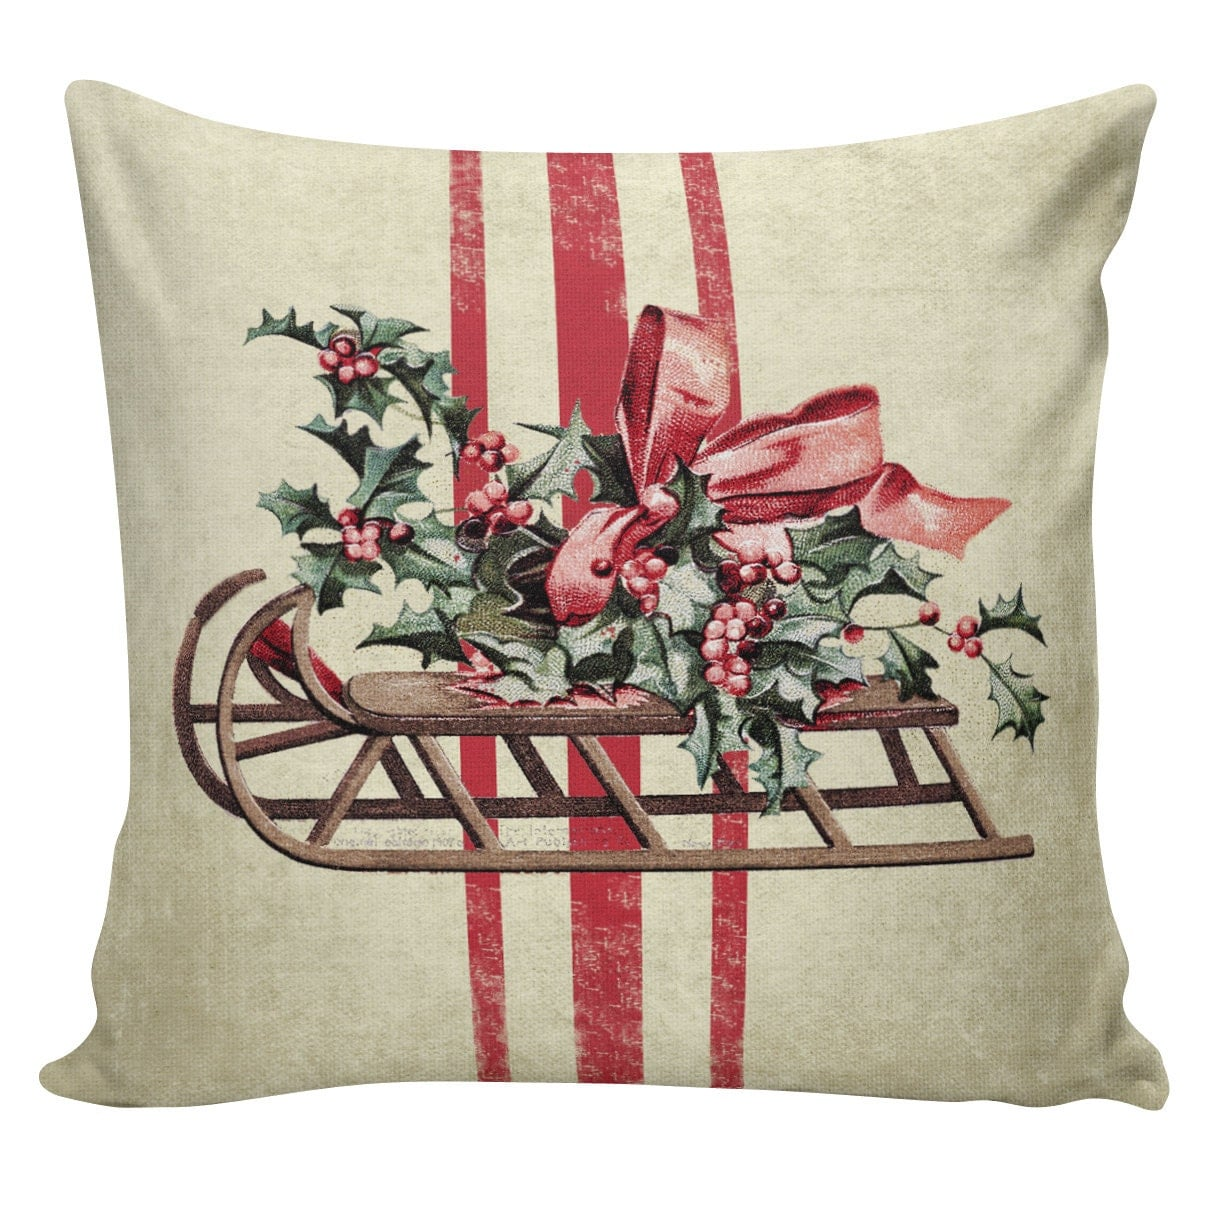 Throw Pillow Etsy : Holiday Throw Pillow Cover Vintage by ElliottHeathDesigns on Etsy